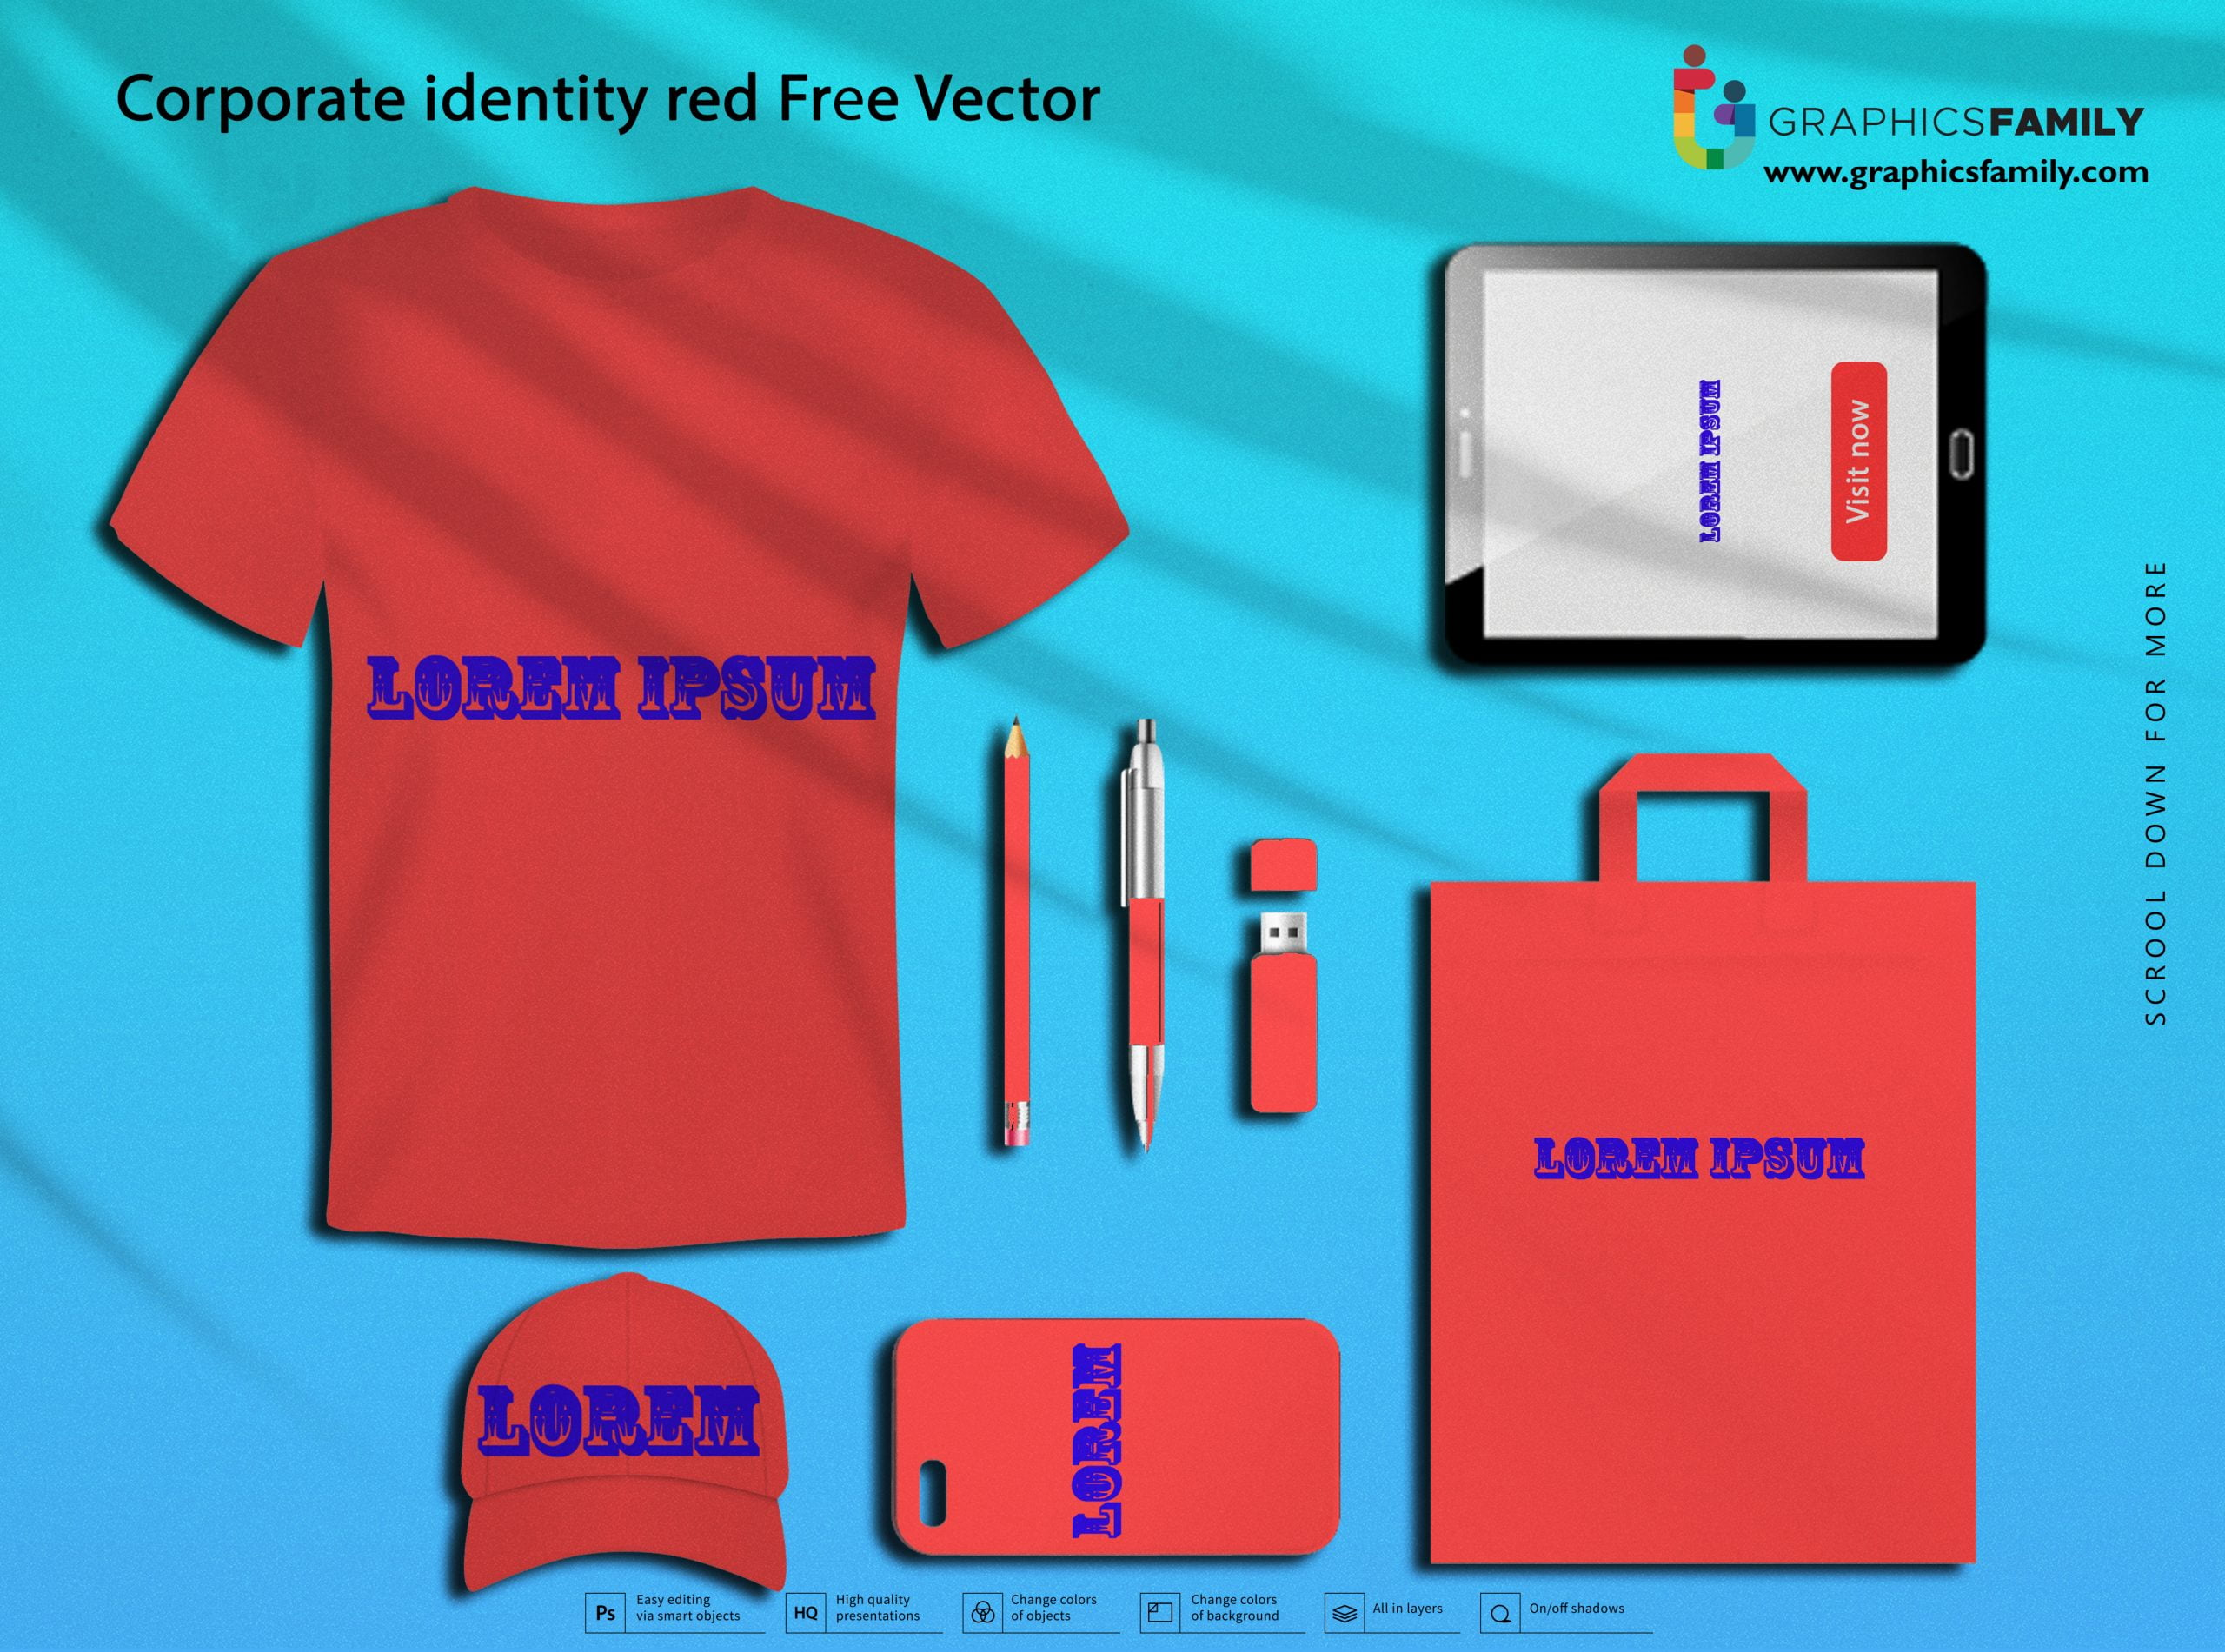 Corporate identity red Free Vector Download